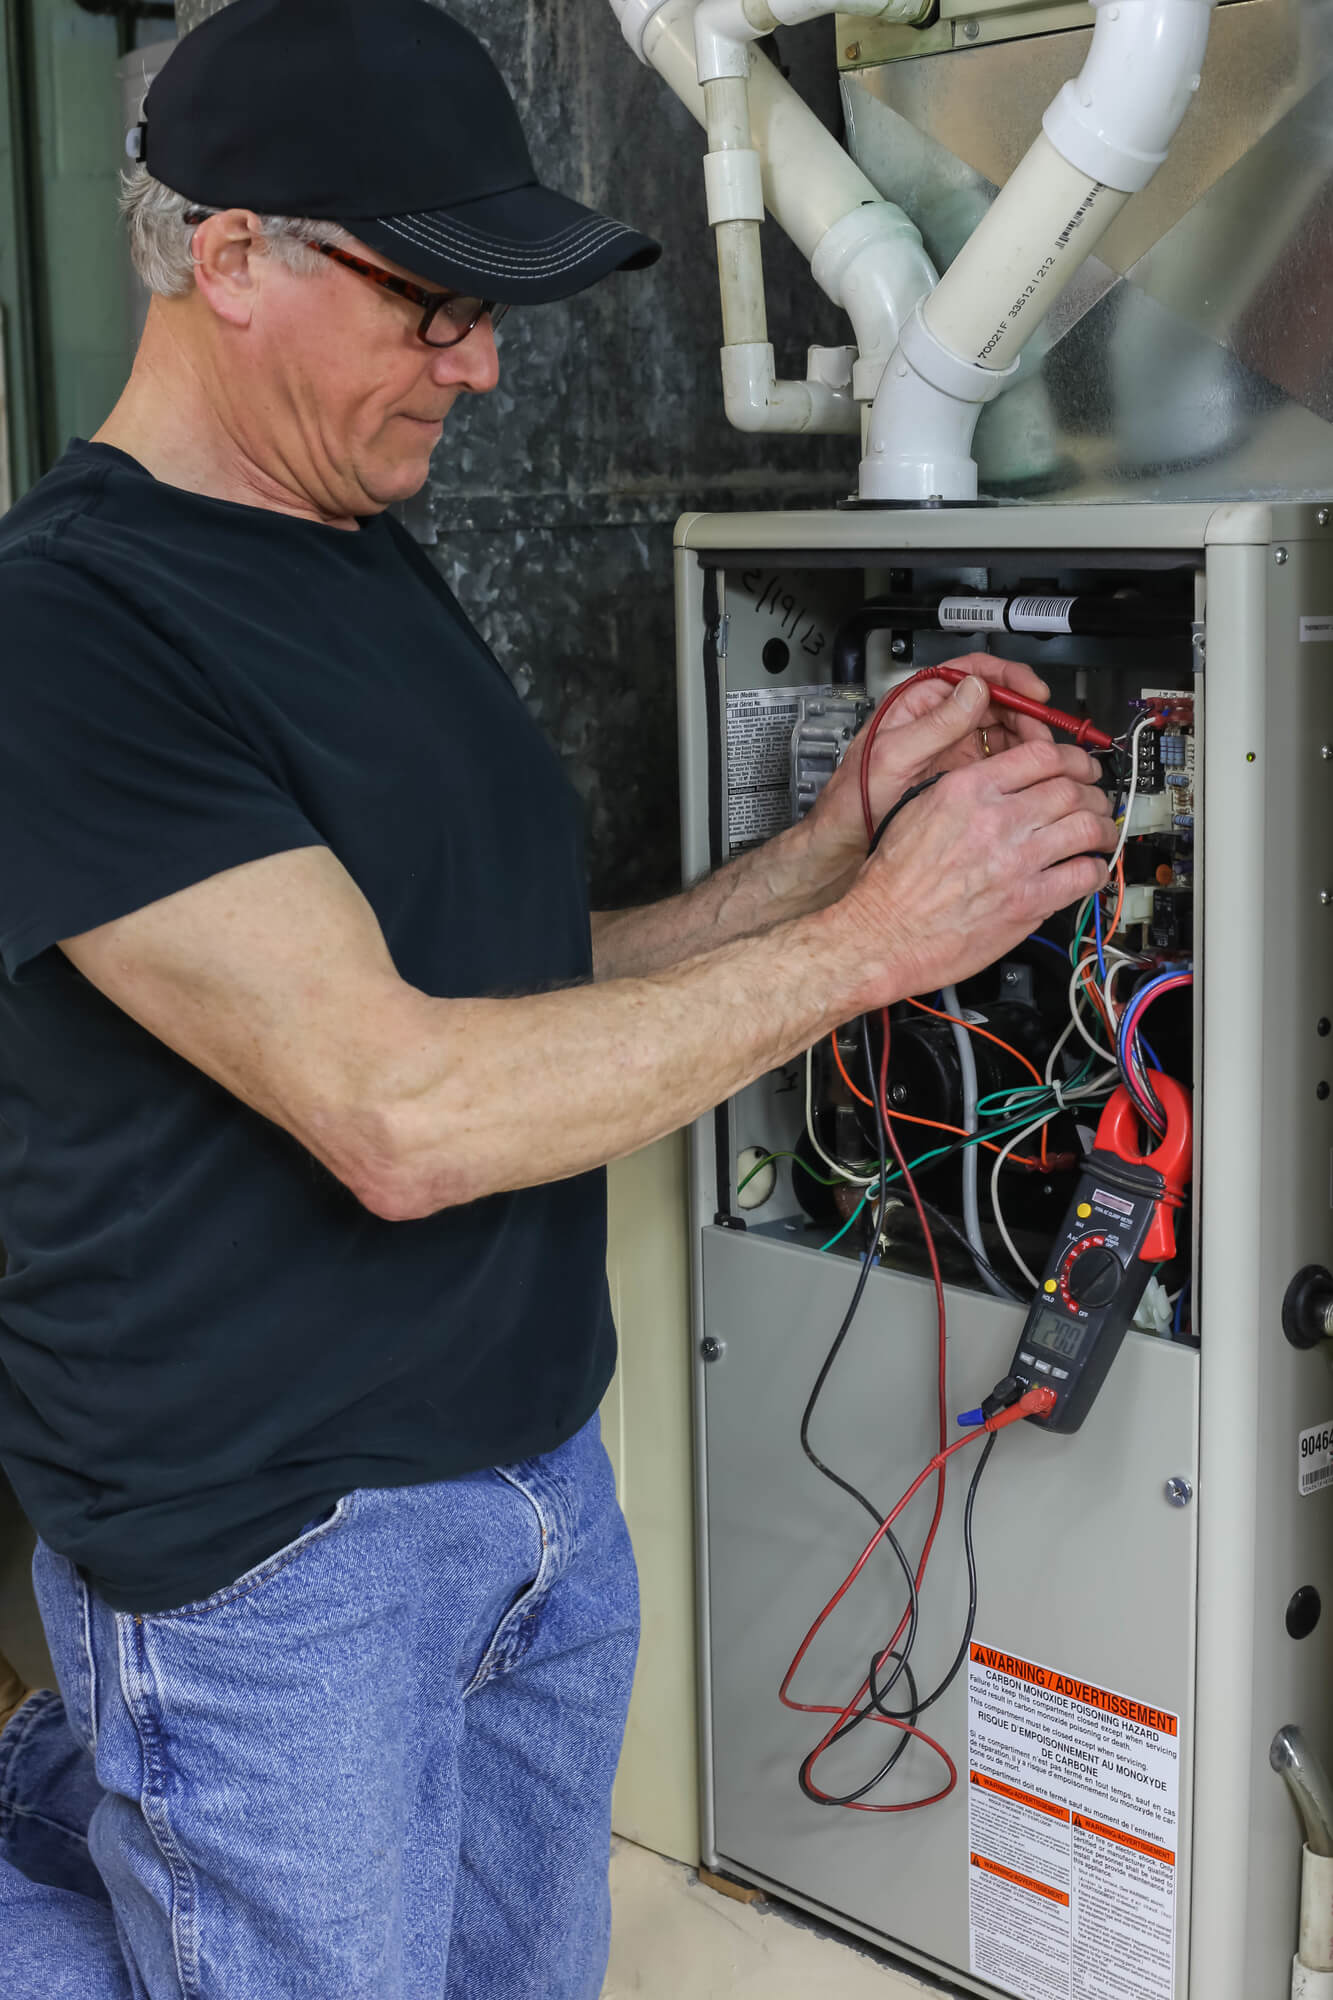 HVAC Technician repairing furnace